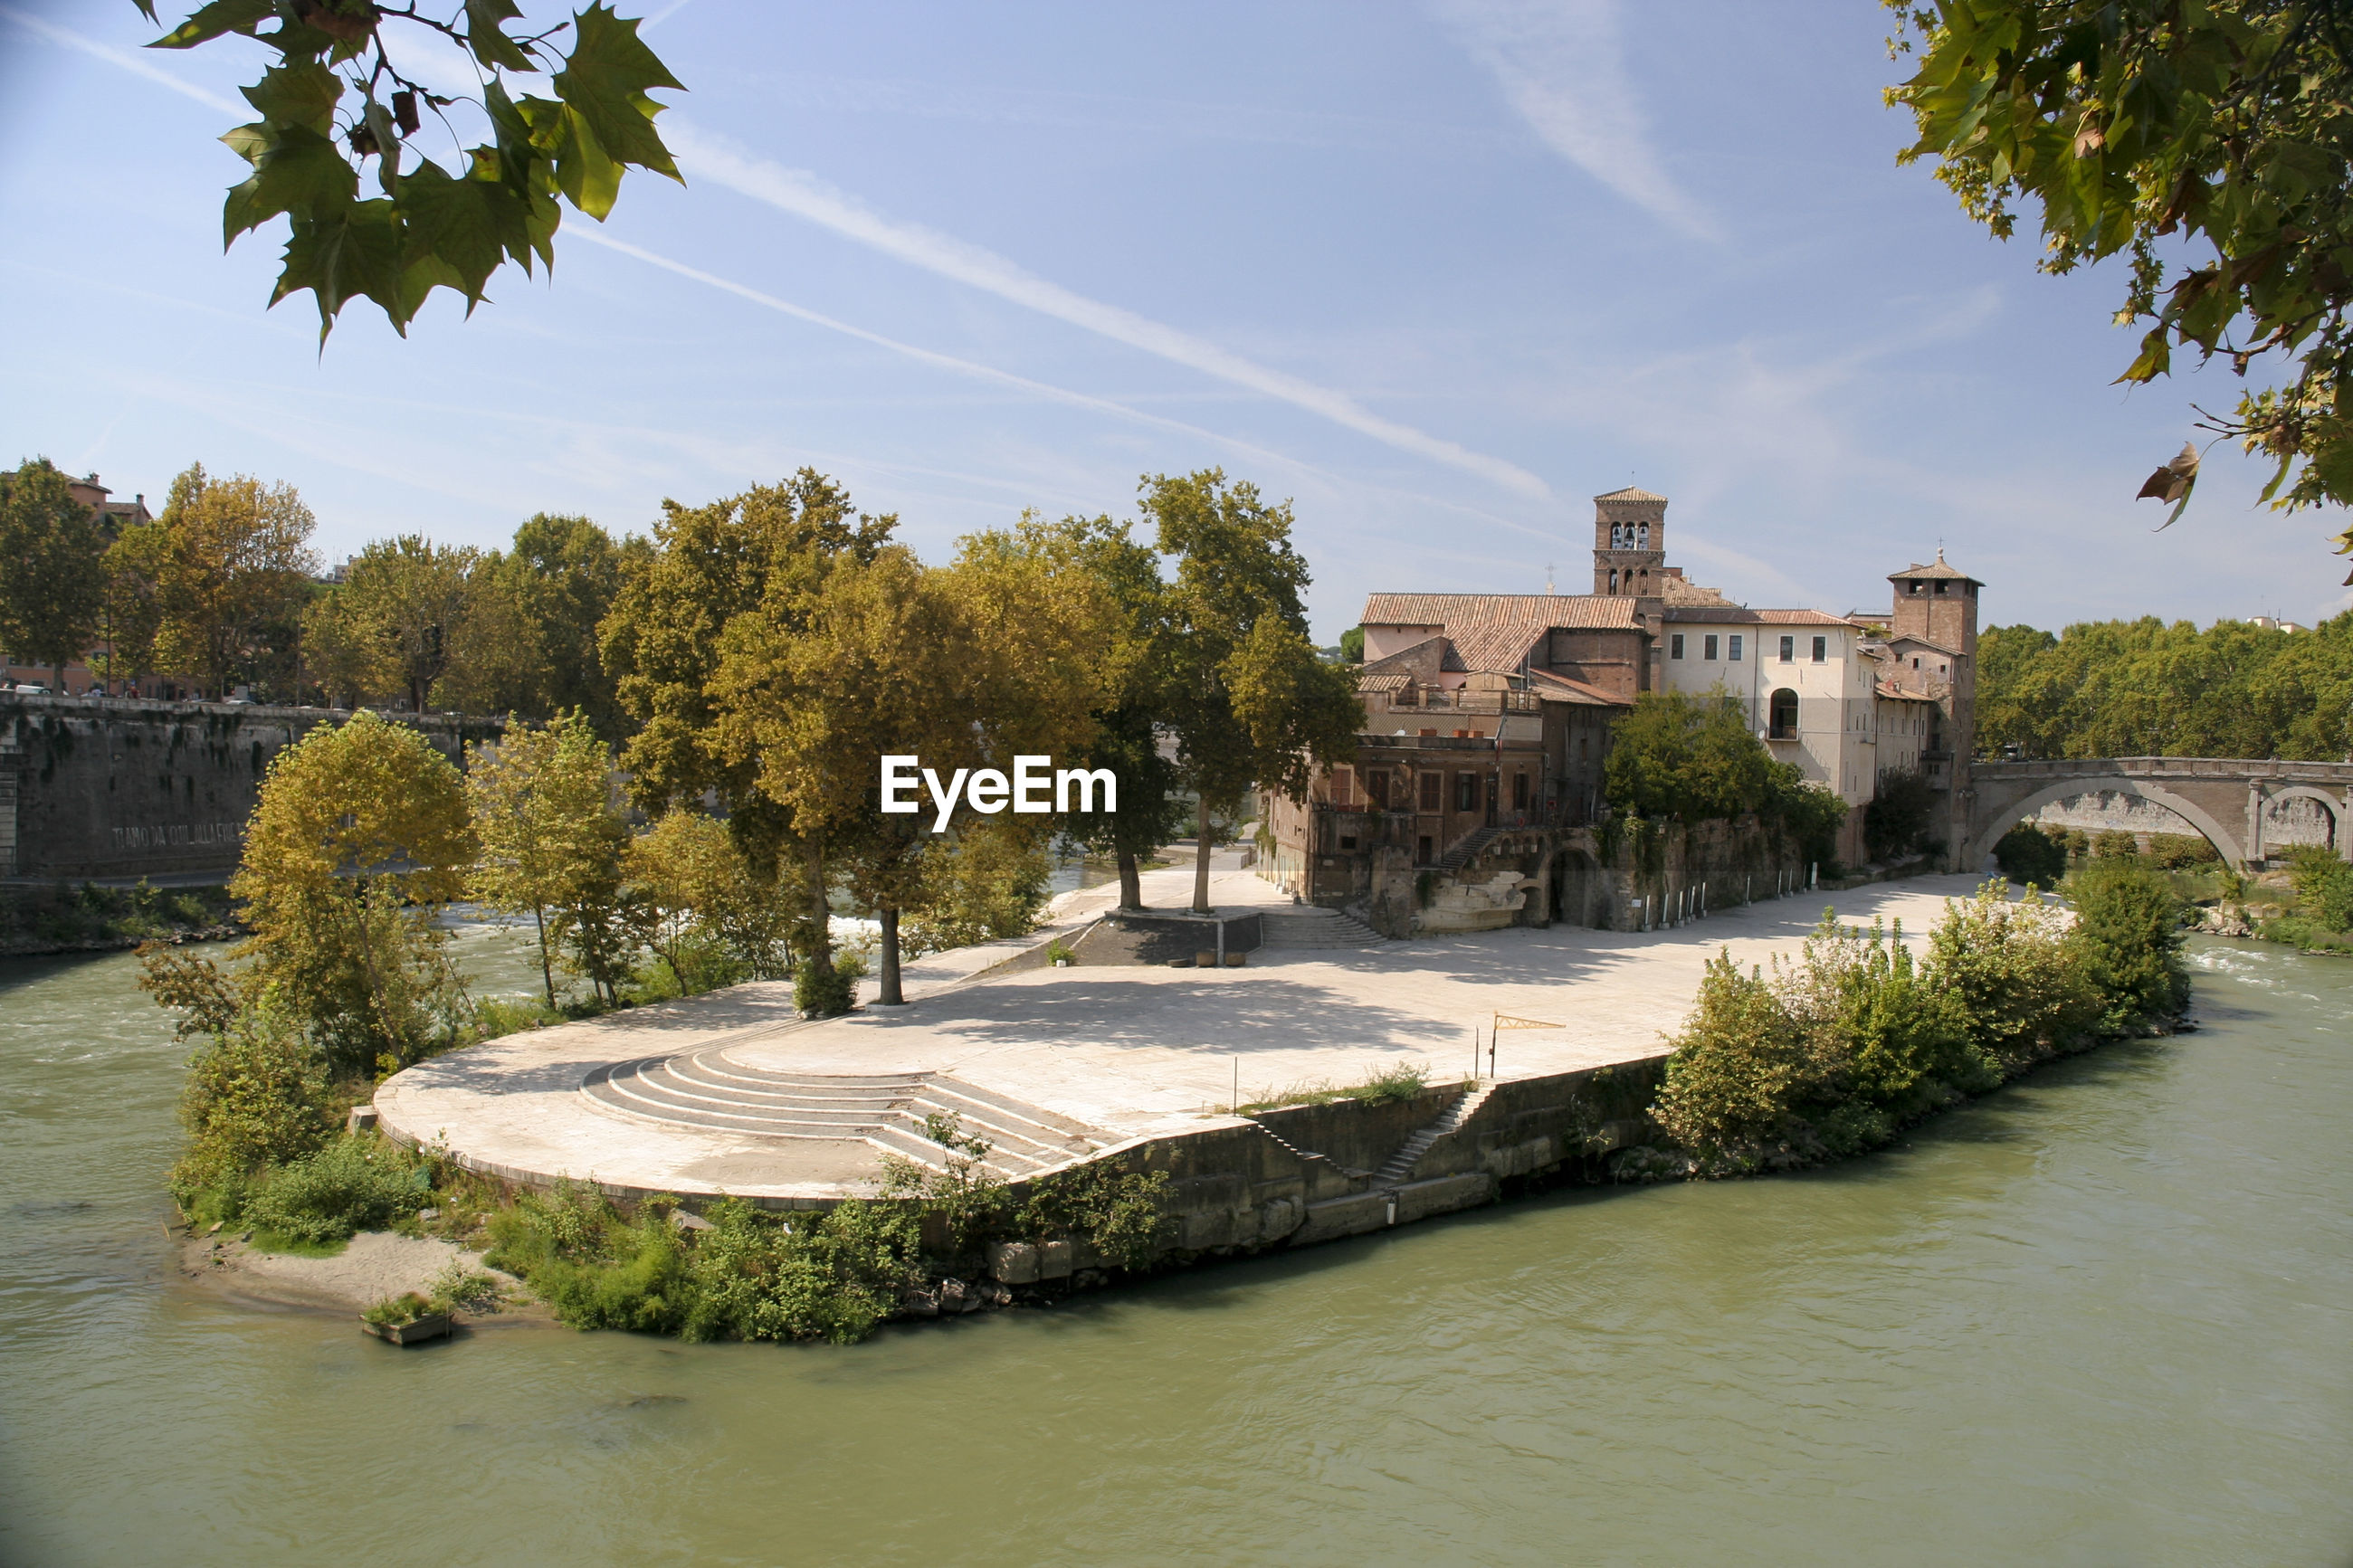 Historic buildings by tiber river against sky